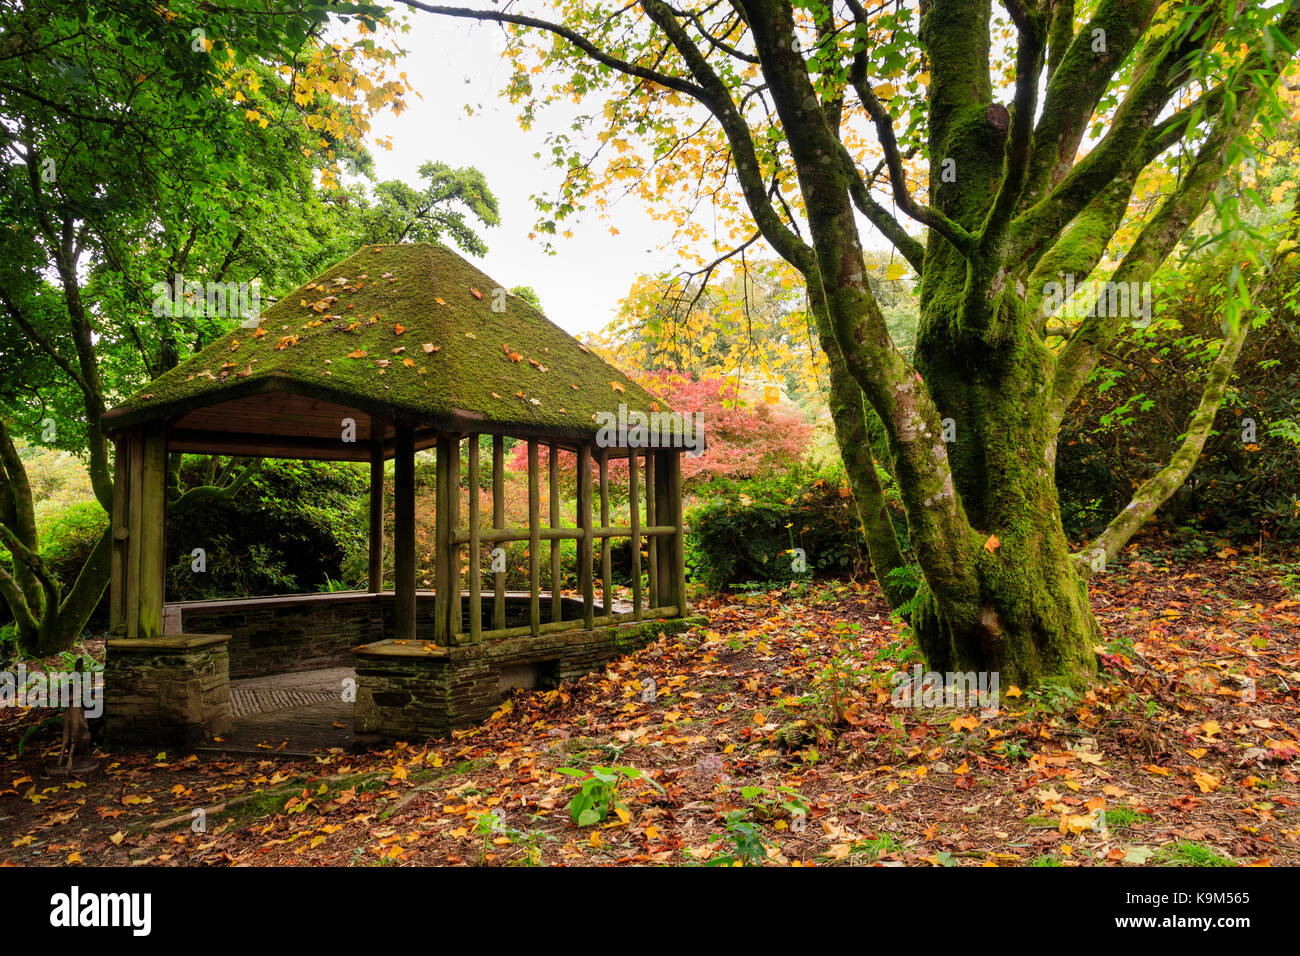 Wood and stone summerhouse at The Garden House, Buckland Monachorum, Devon,UK, in early Autumn - Stock Image